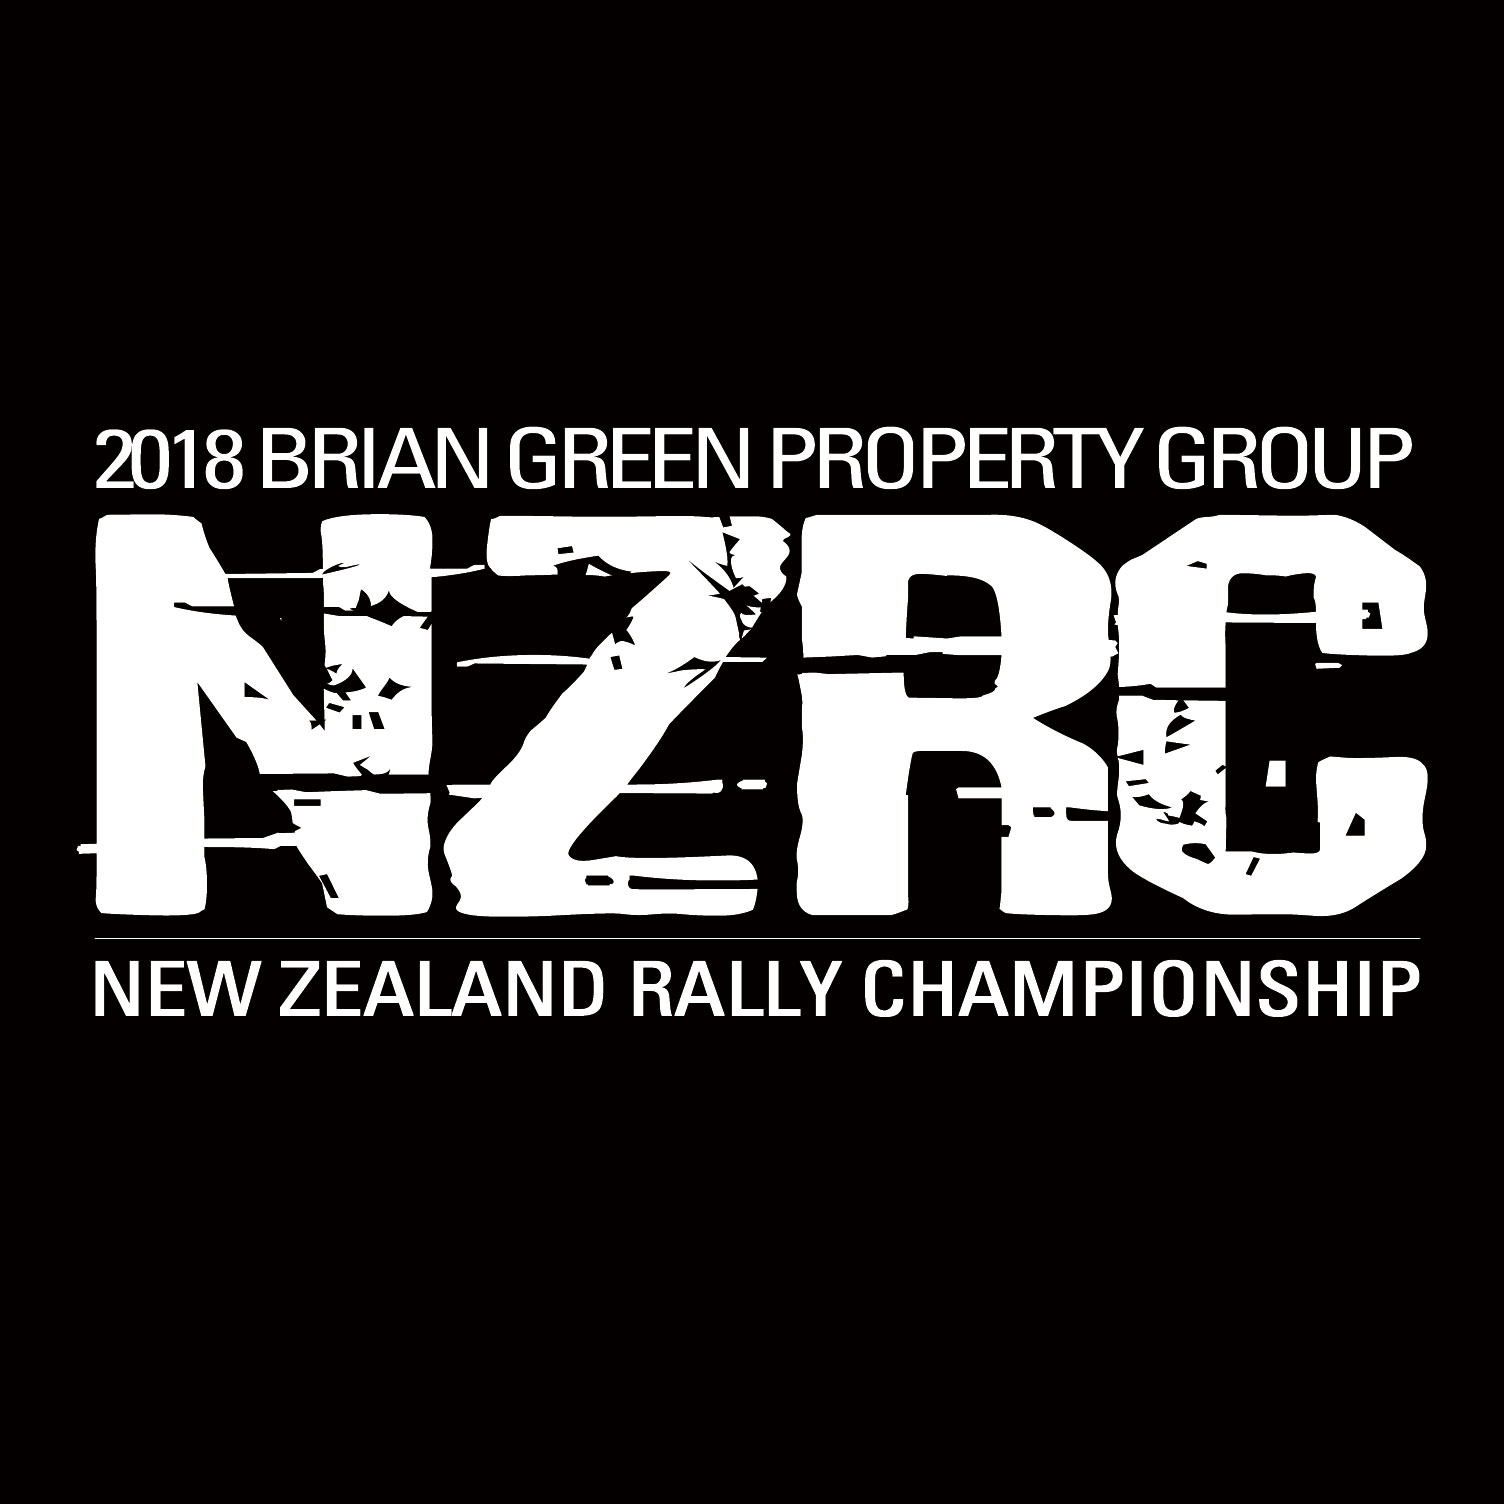 New co-driver for Paddon in Whangarei | :: Brian Green Property Group New Zealand Rally Championship ::